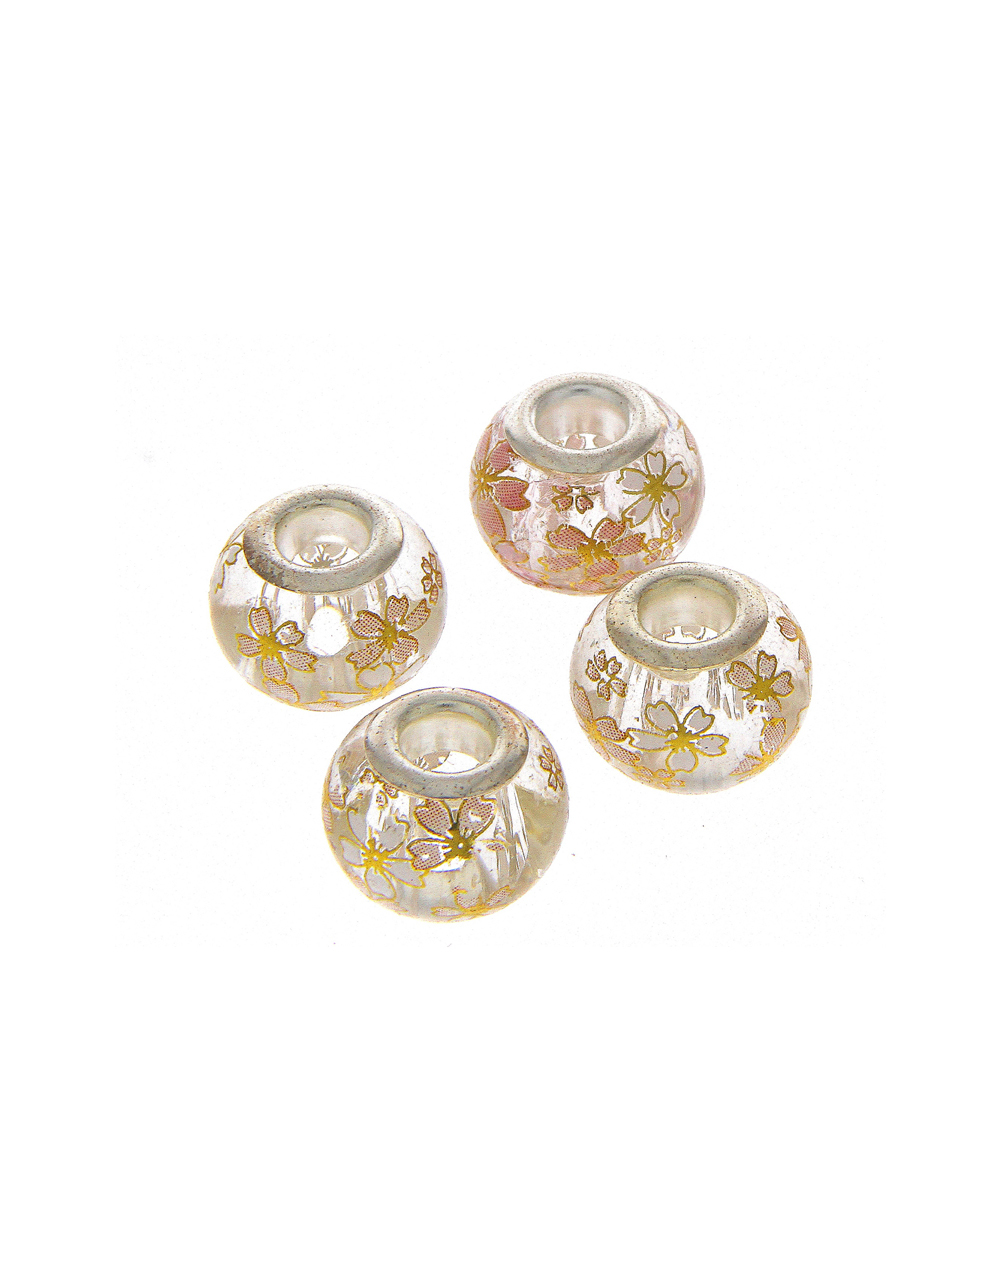 Cream Colour Floral Printed Beads For Jewellery Making